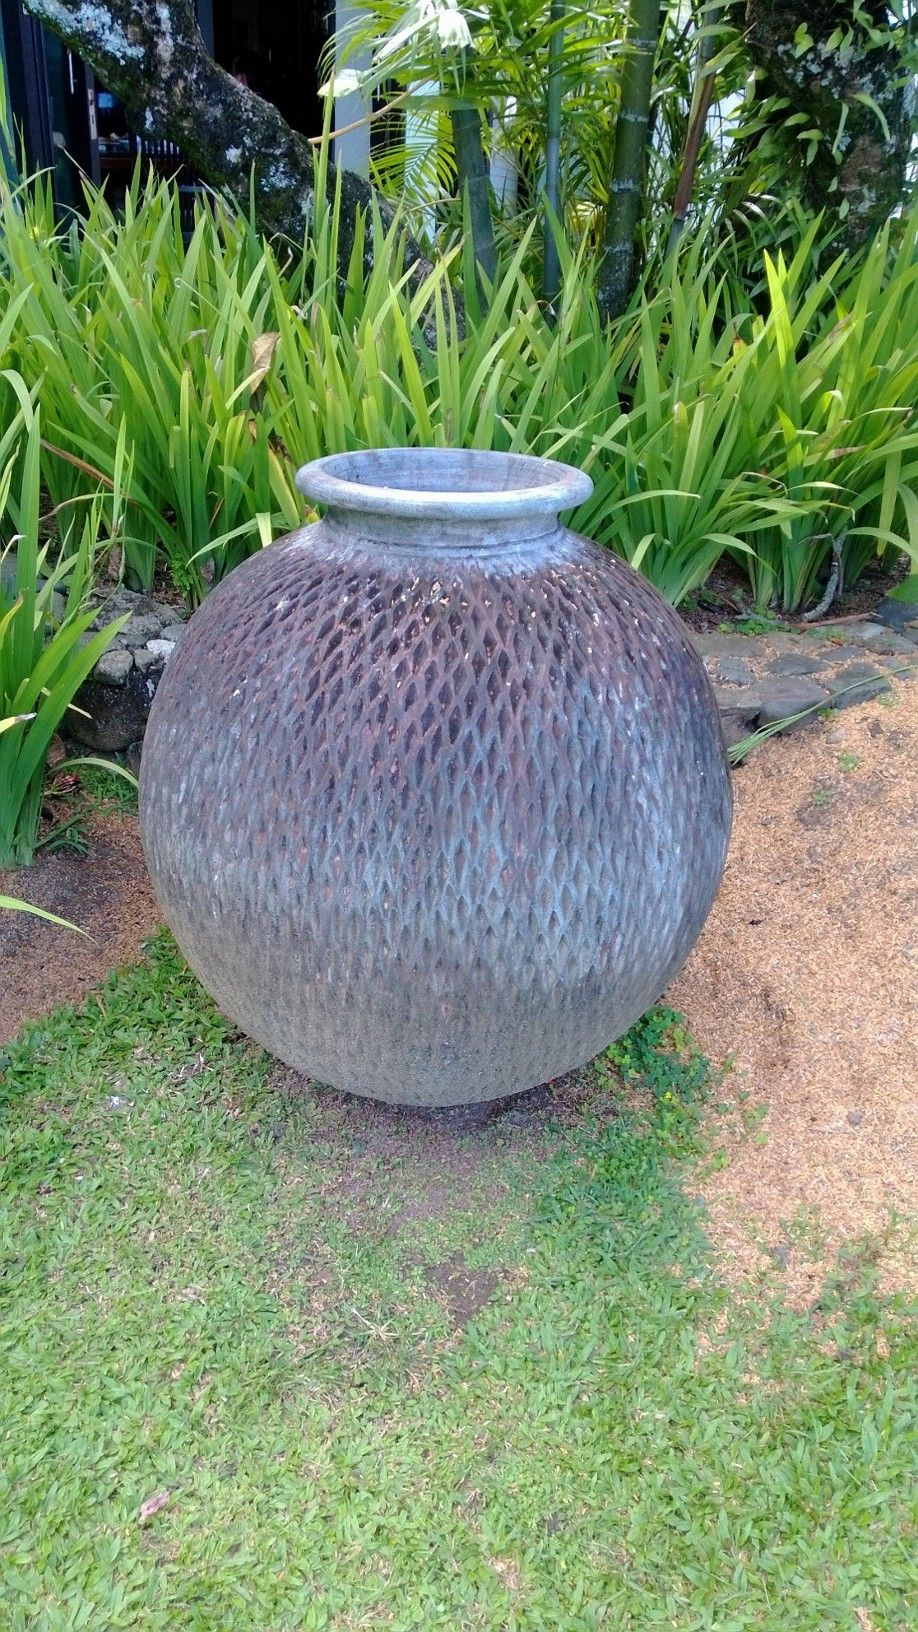 Pot in Fiji (With images) | Outdoor ottoman, Outdoor decor ...